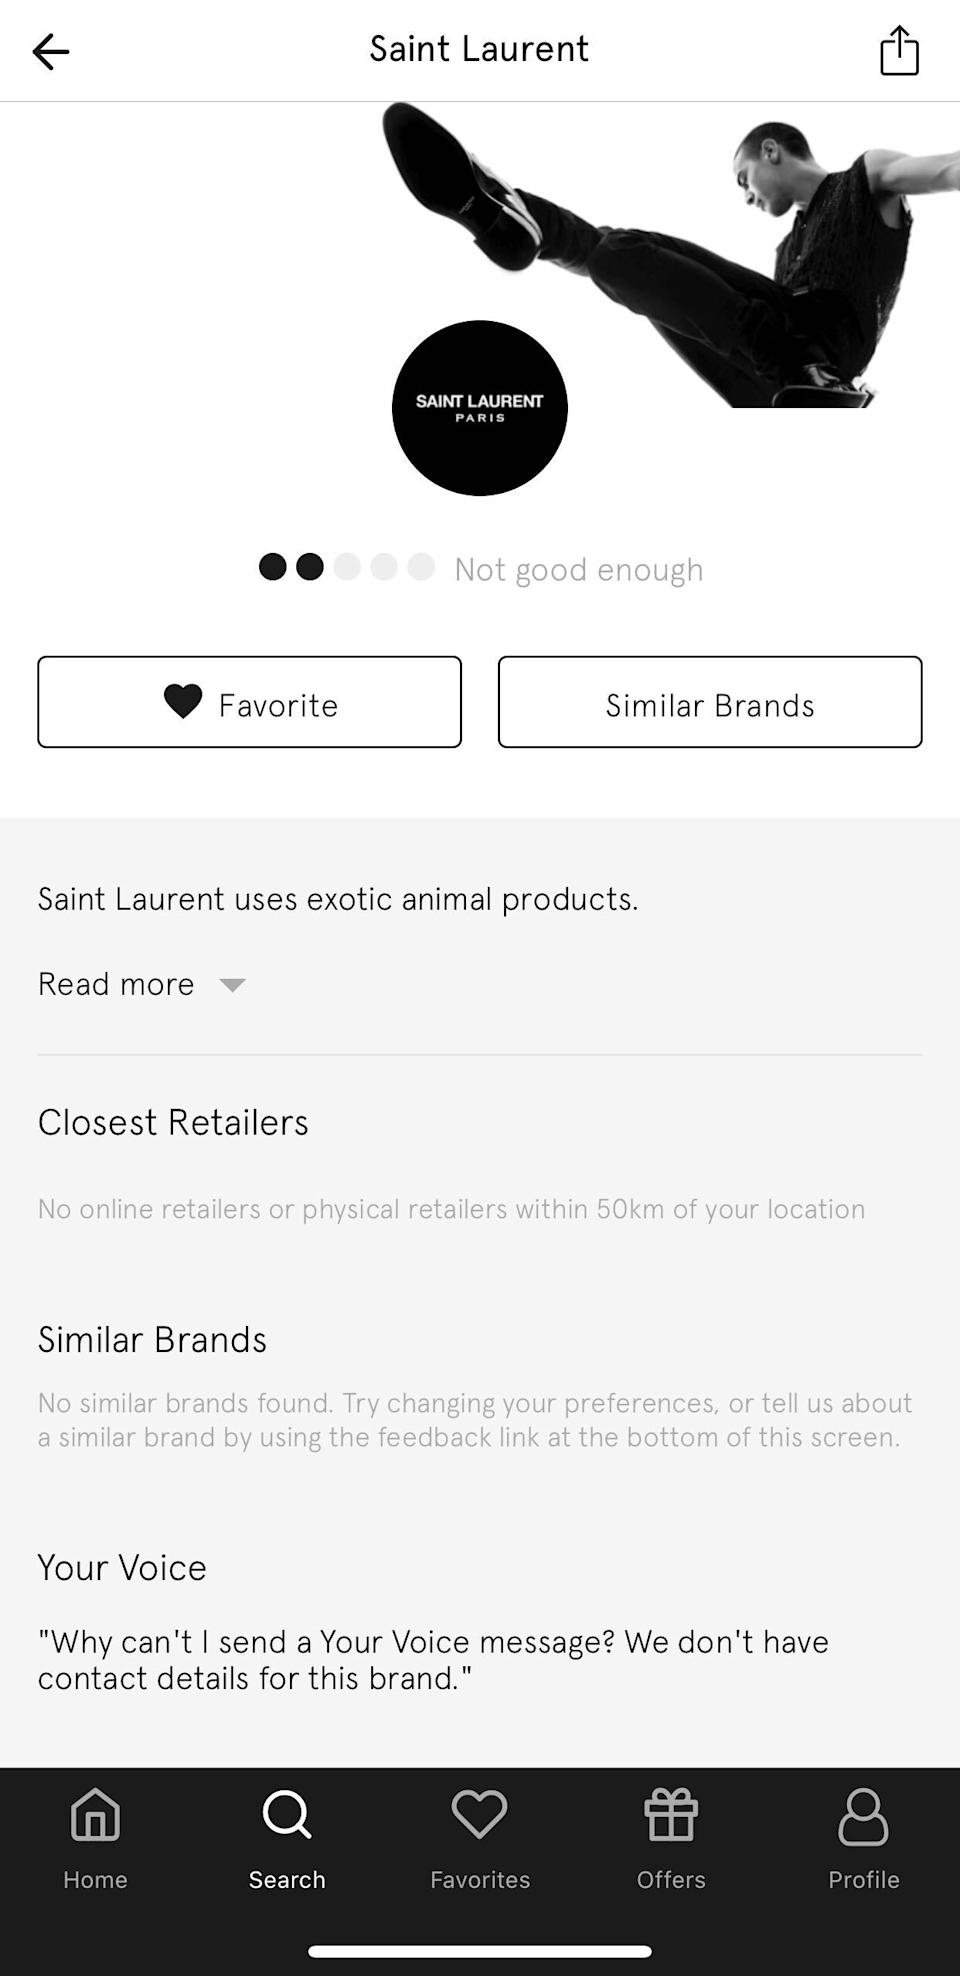 """the Good On You app describes Saint Laurent as """"not good enough"""". (Good On You)"""